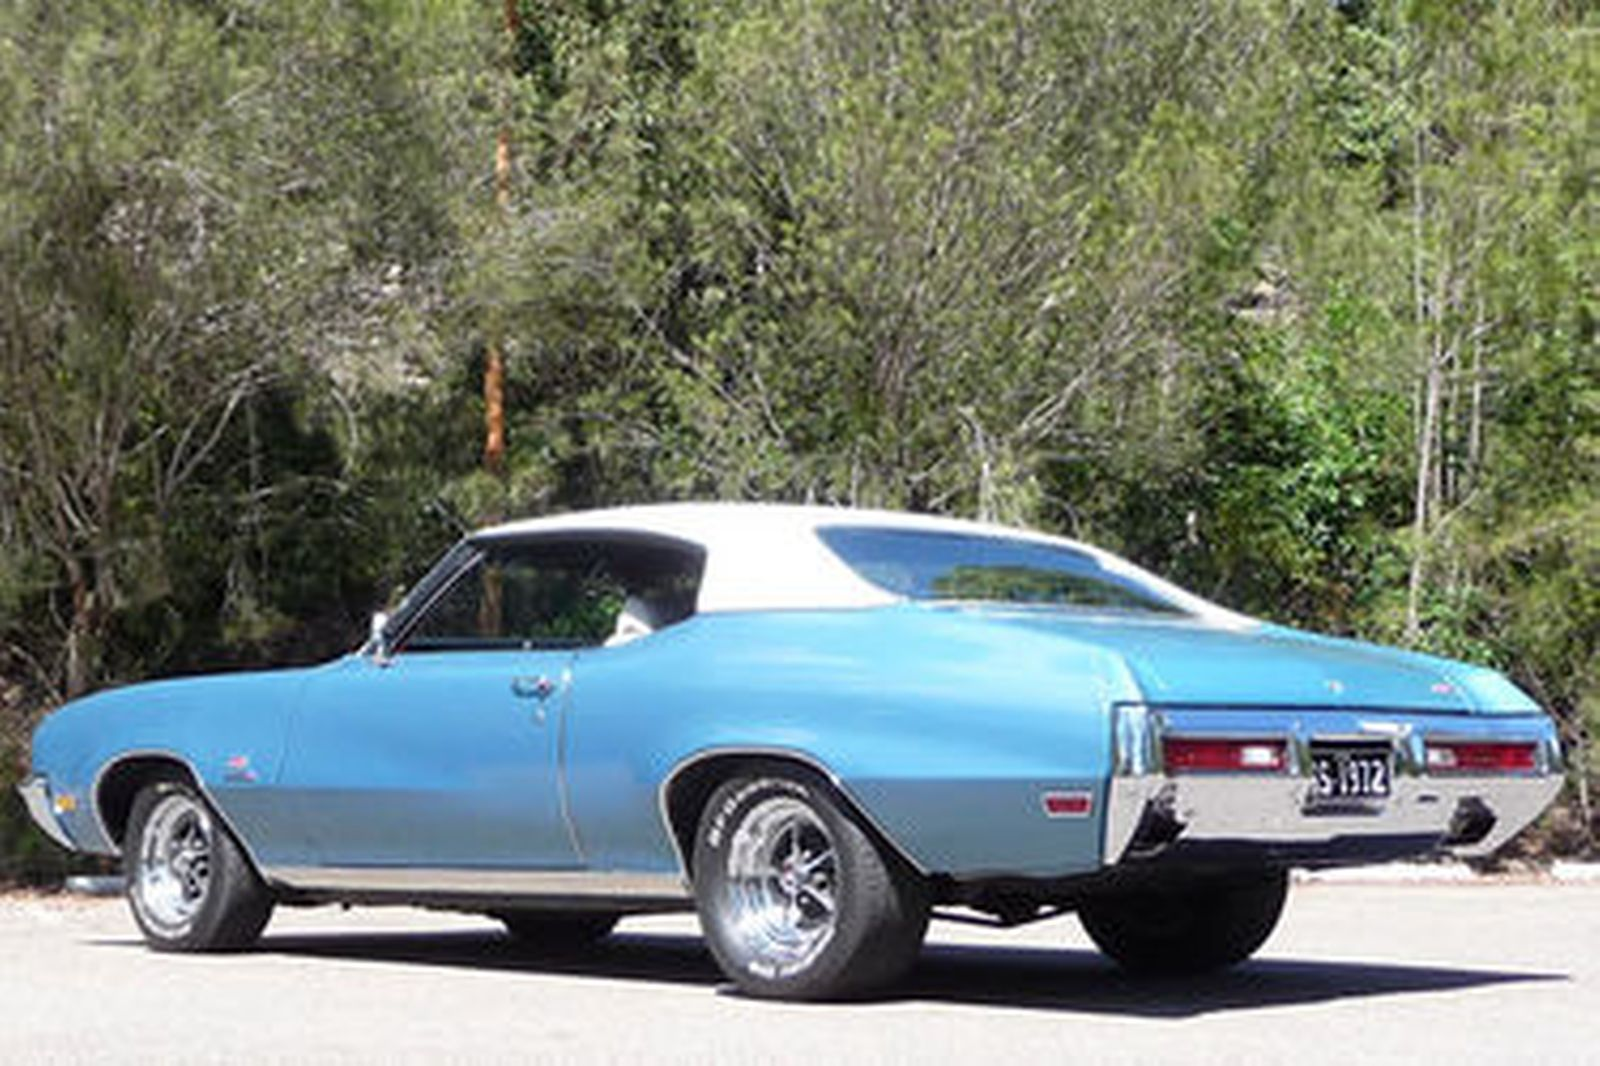 buick gs 455 'stage 1' coupe (rhd) auctions - lot 11 - shannons